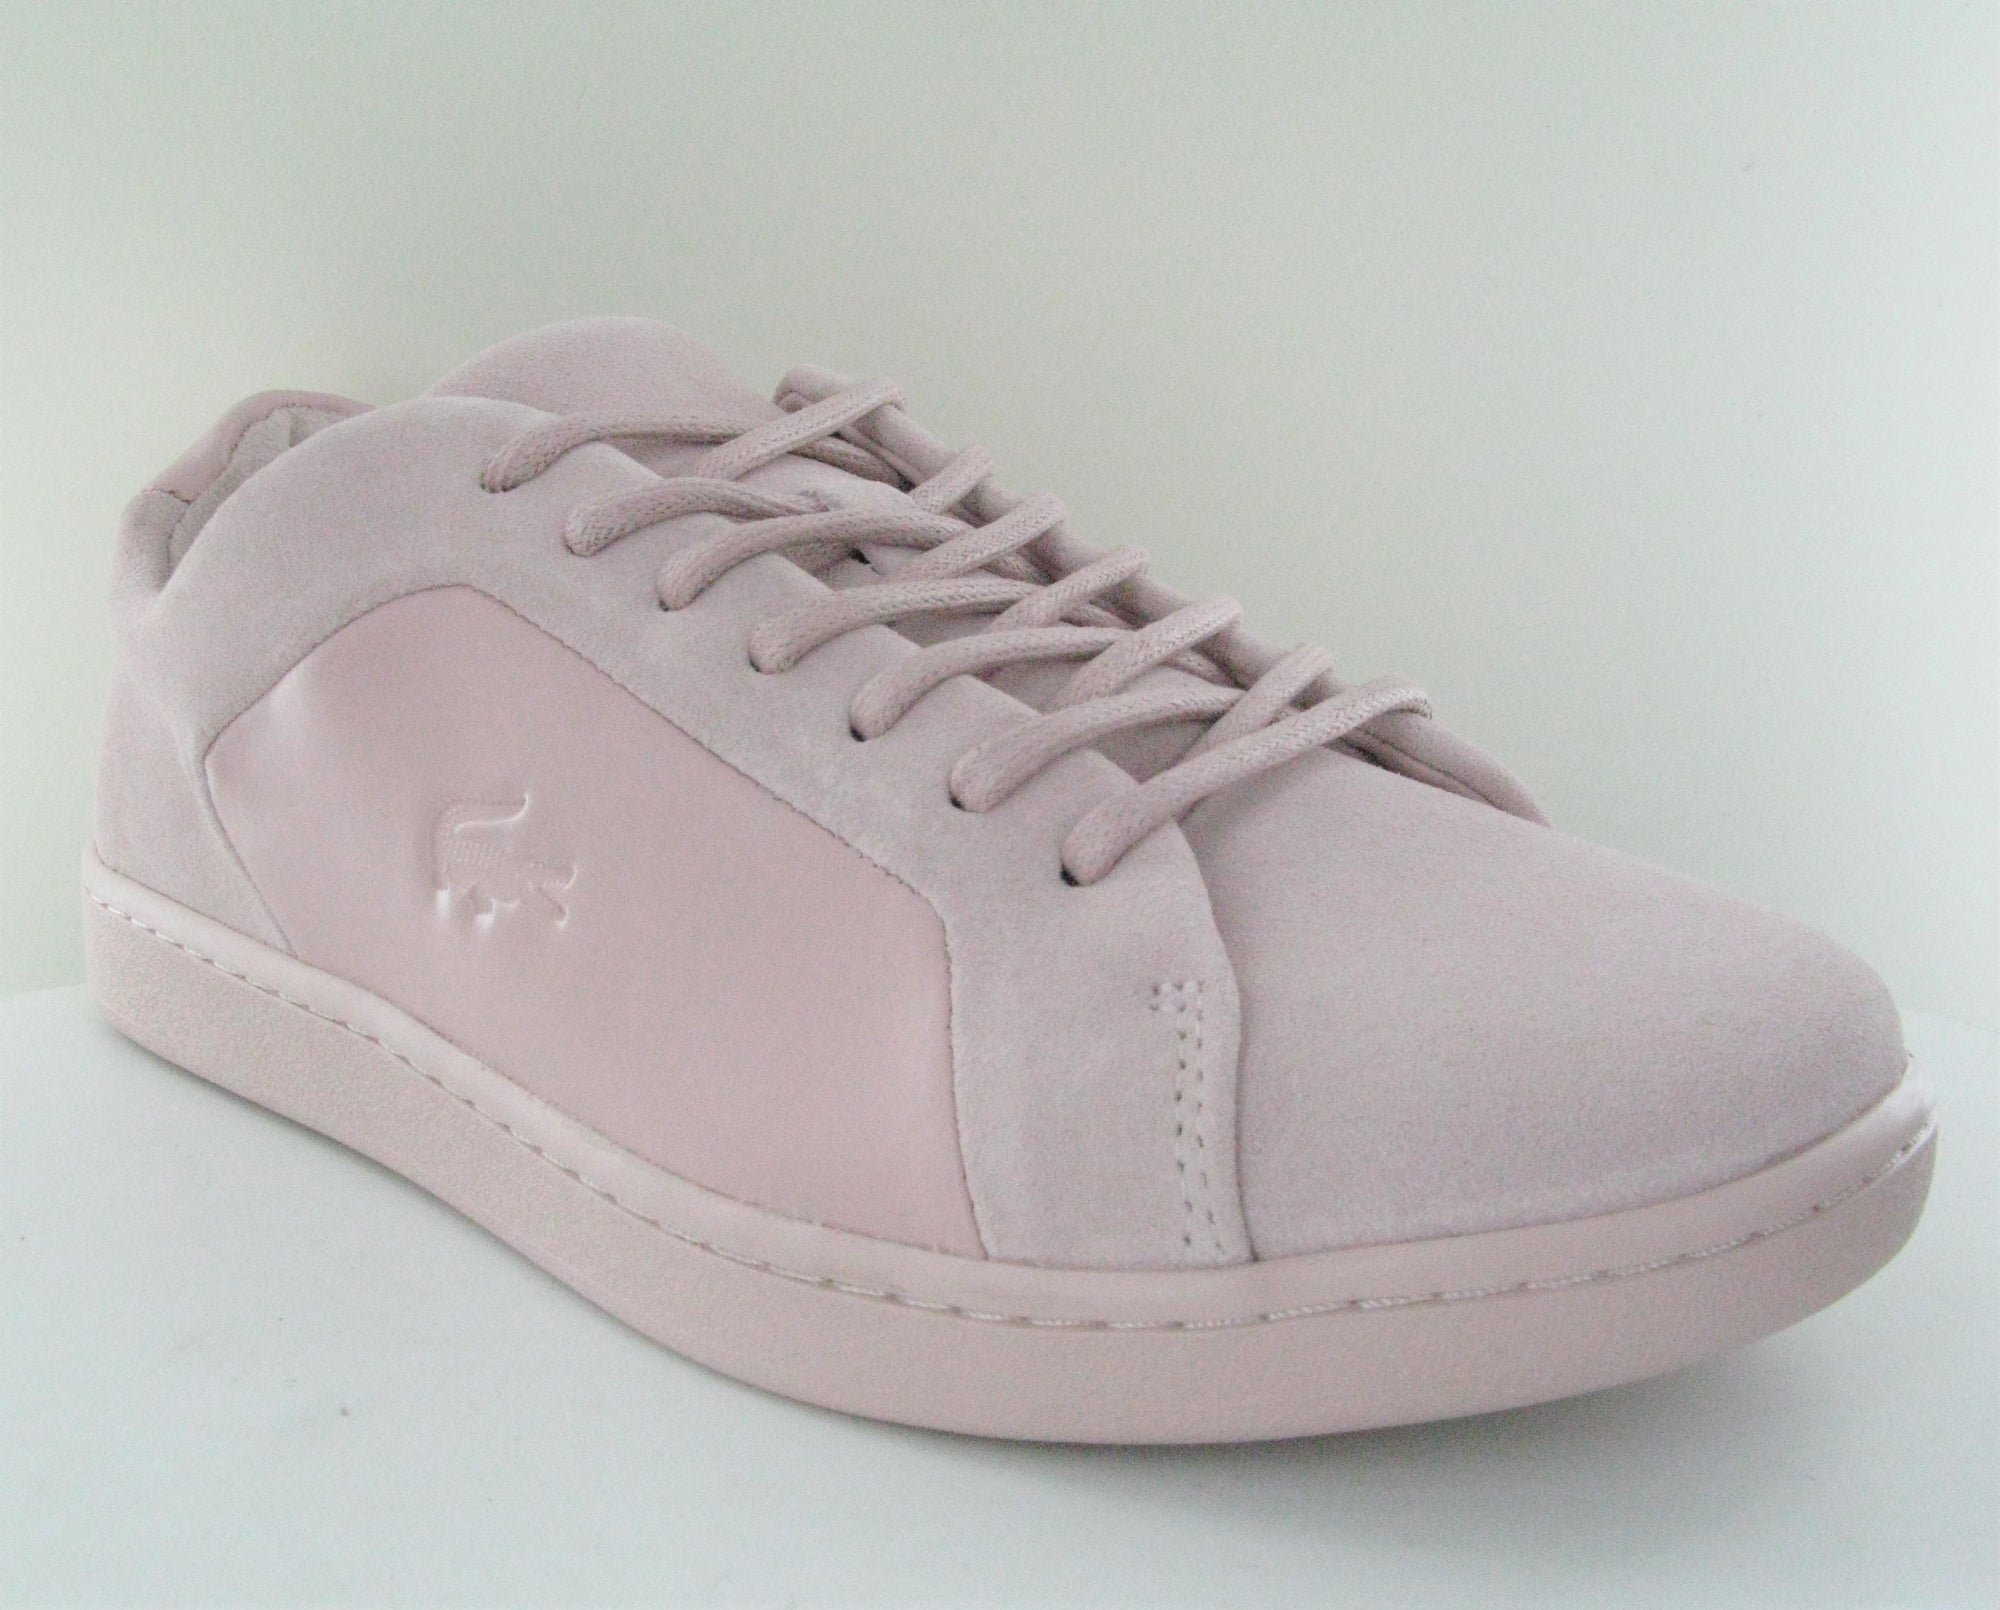 c0496b08b Lacoste Women WOMEN S CARNABY EVO 118 2 light pink Trainers 735SPW0051 -  Top brand shoes